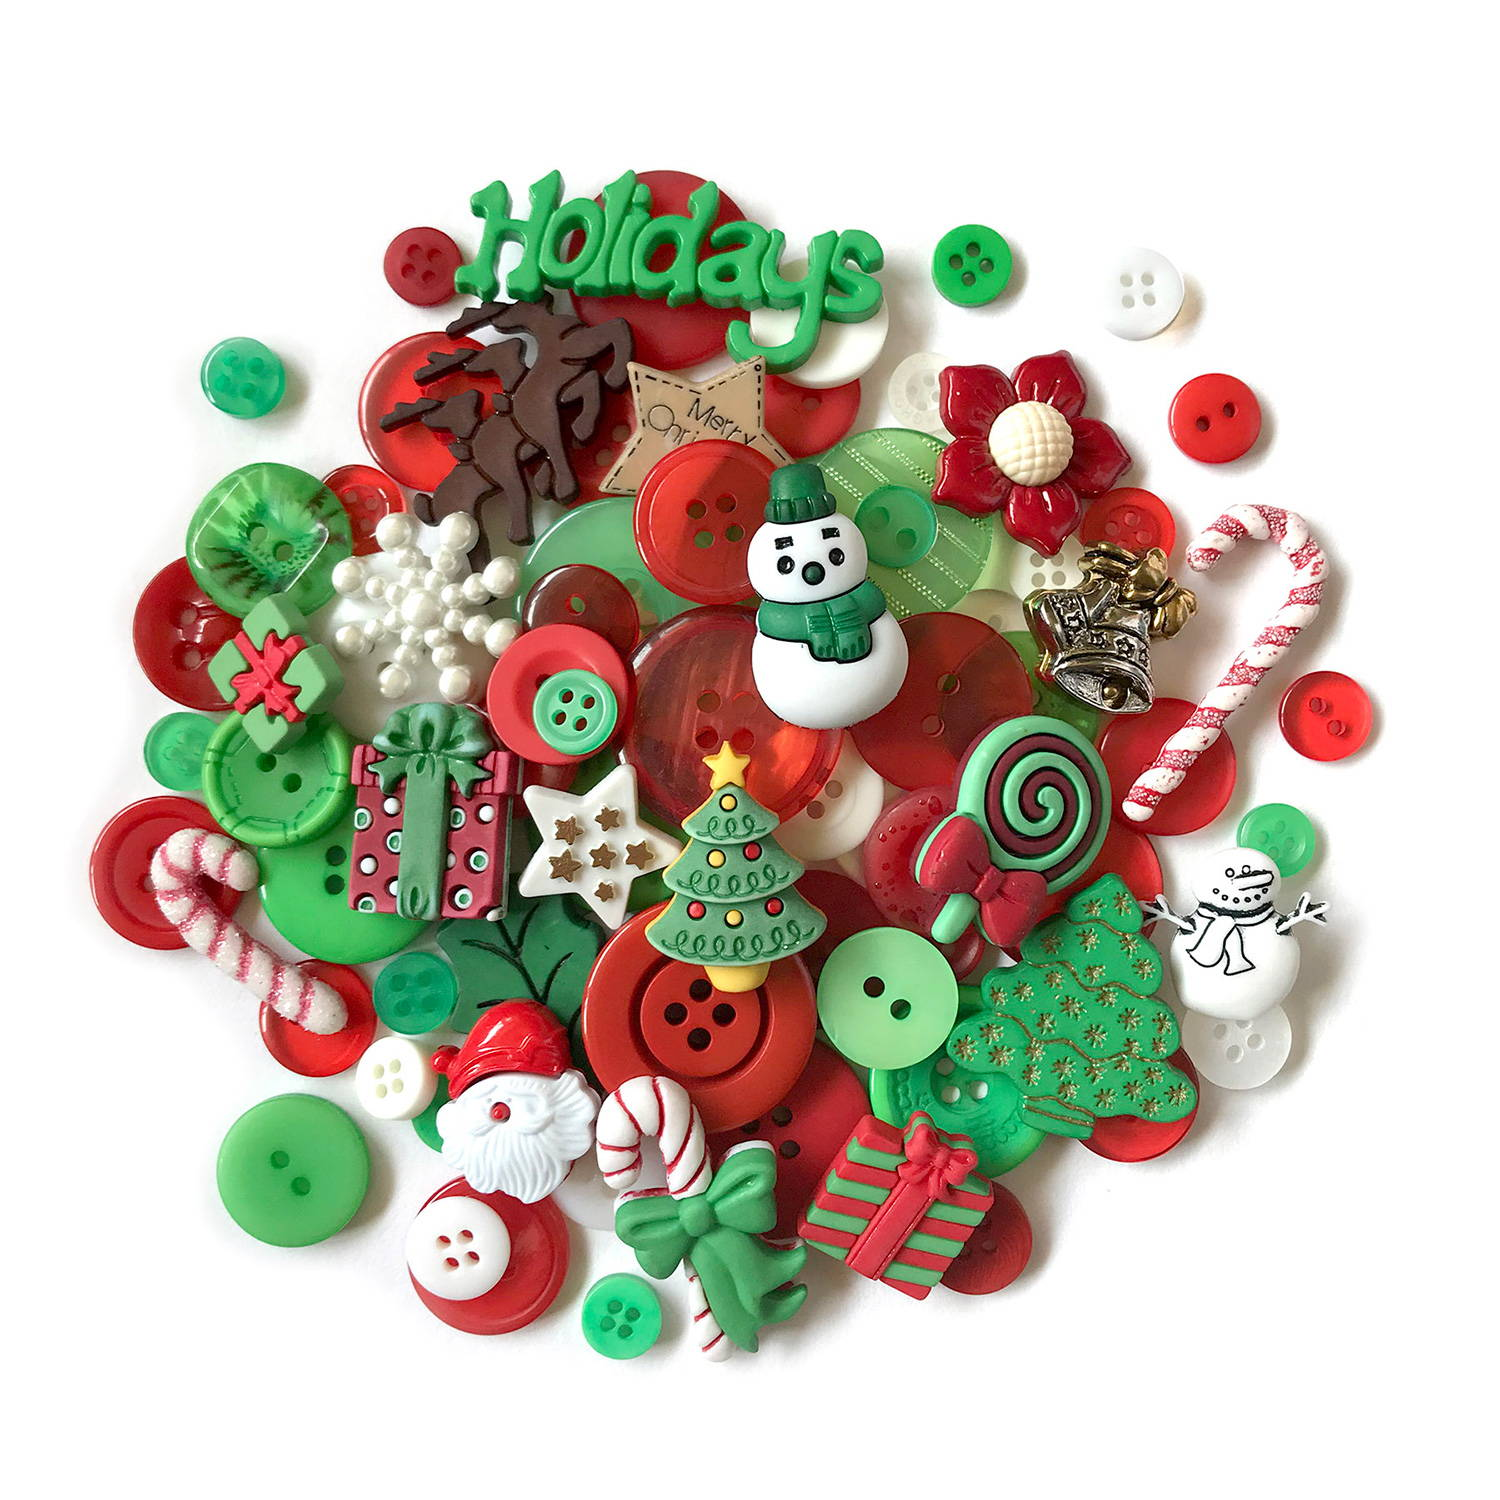 Buy Best Buttons Online for Christmas